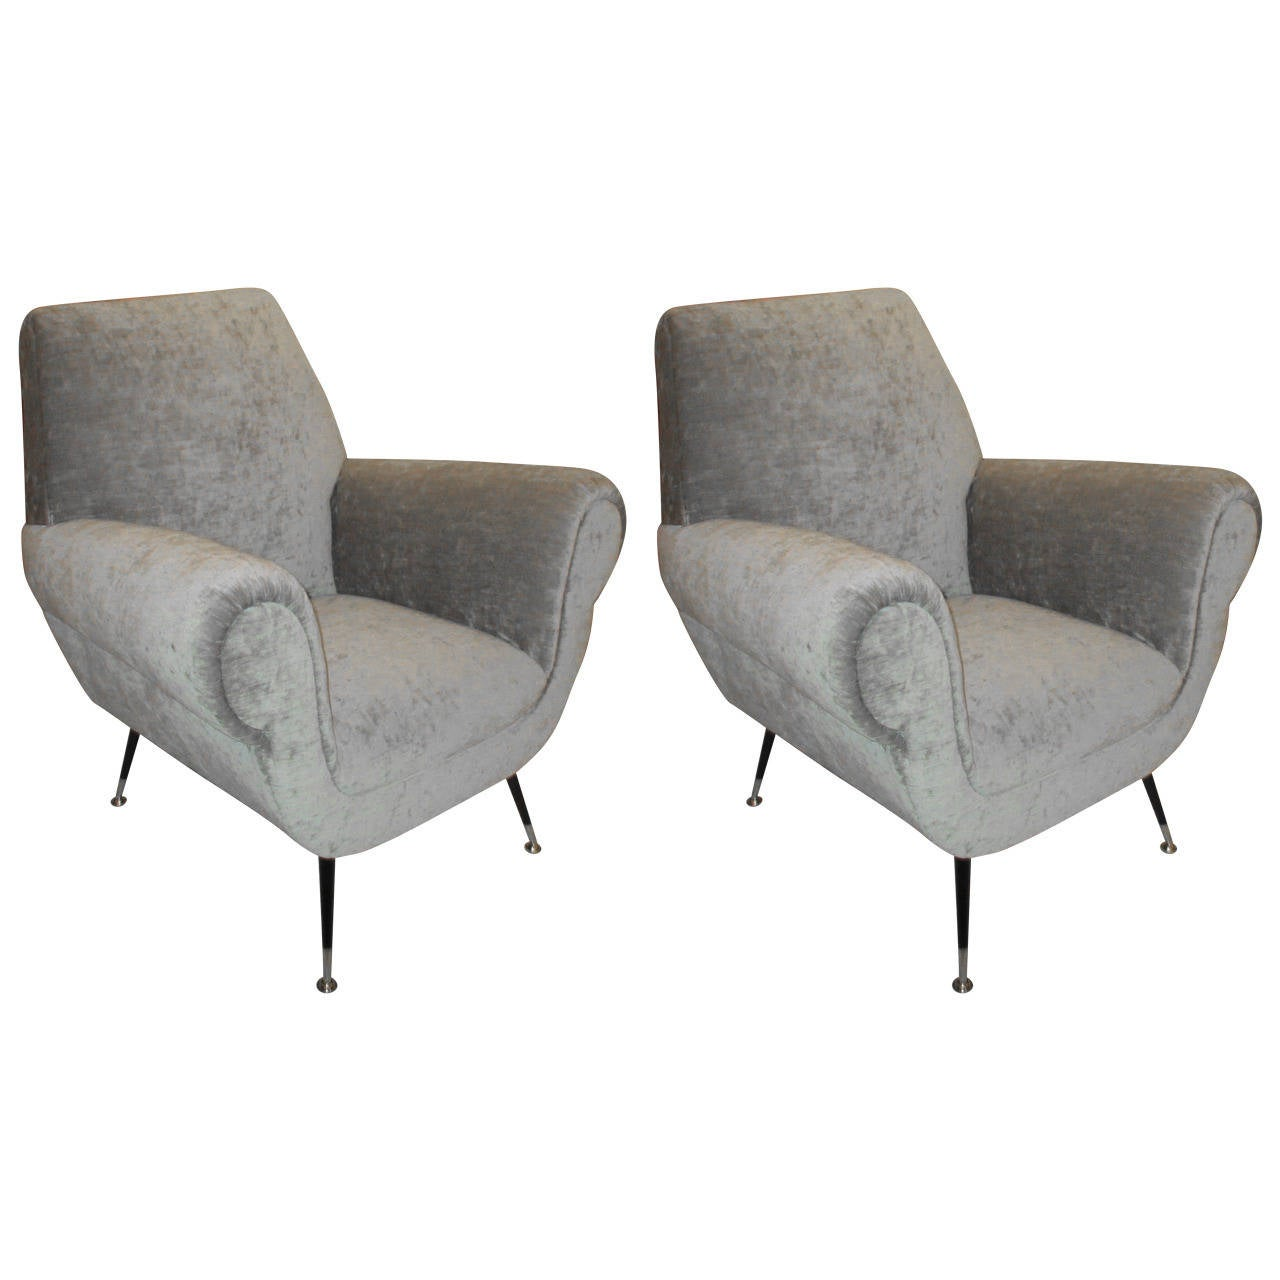 Sculptural pair of mid century modern armchairs at 1stdibs for Mid century modern armchairs